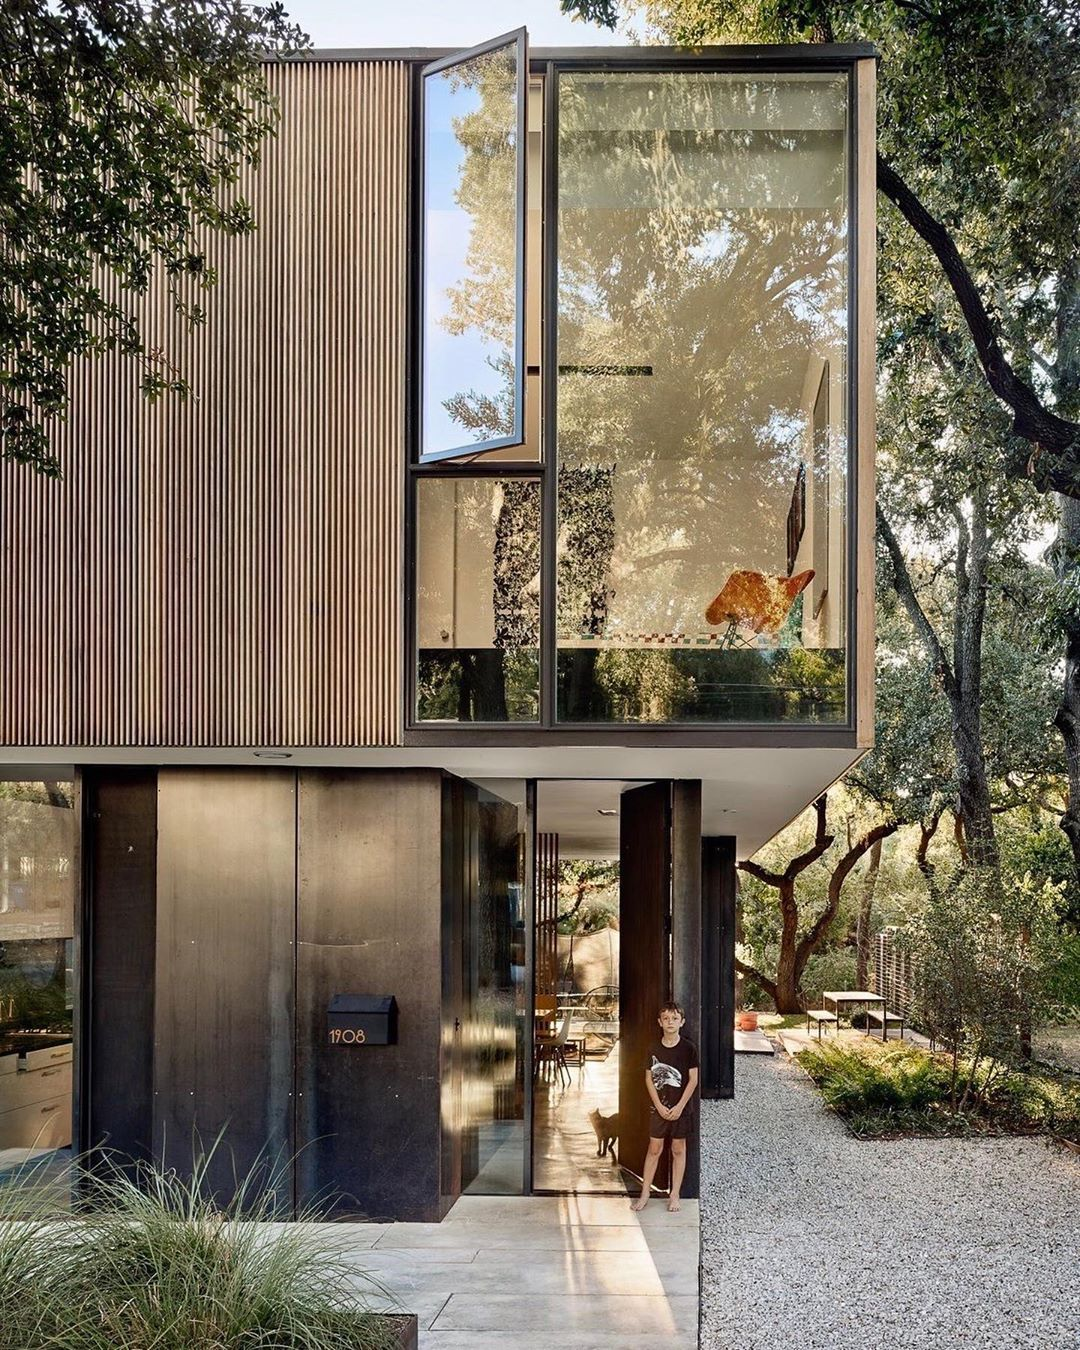 Dwell S Instagram Profile Post This Is The Cheapest House Either Of Our Offices Have Ever Worked On Say Hom In 2020 Austin Homes Architecture Exterior West Campus